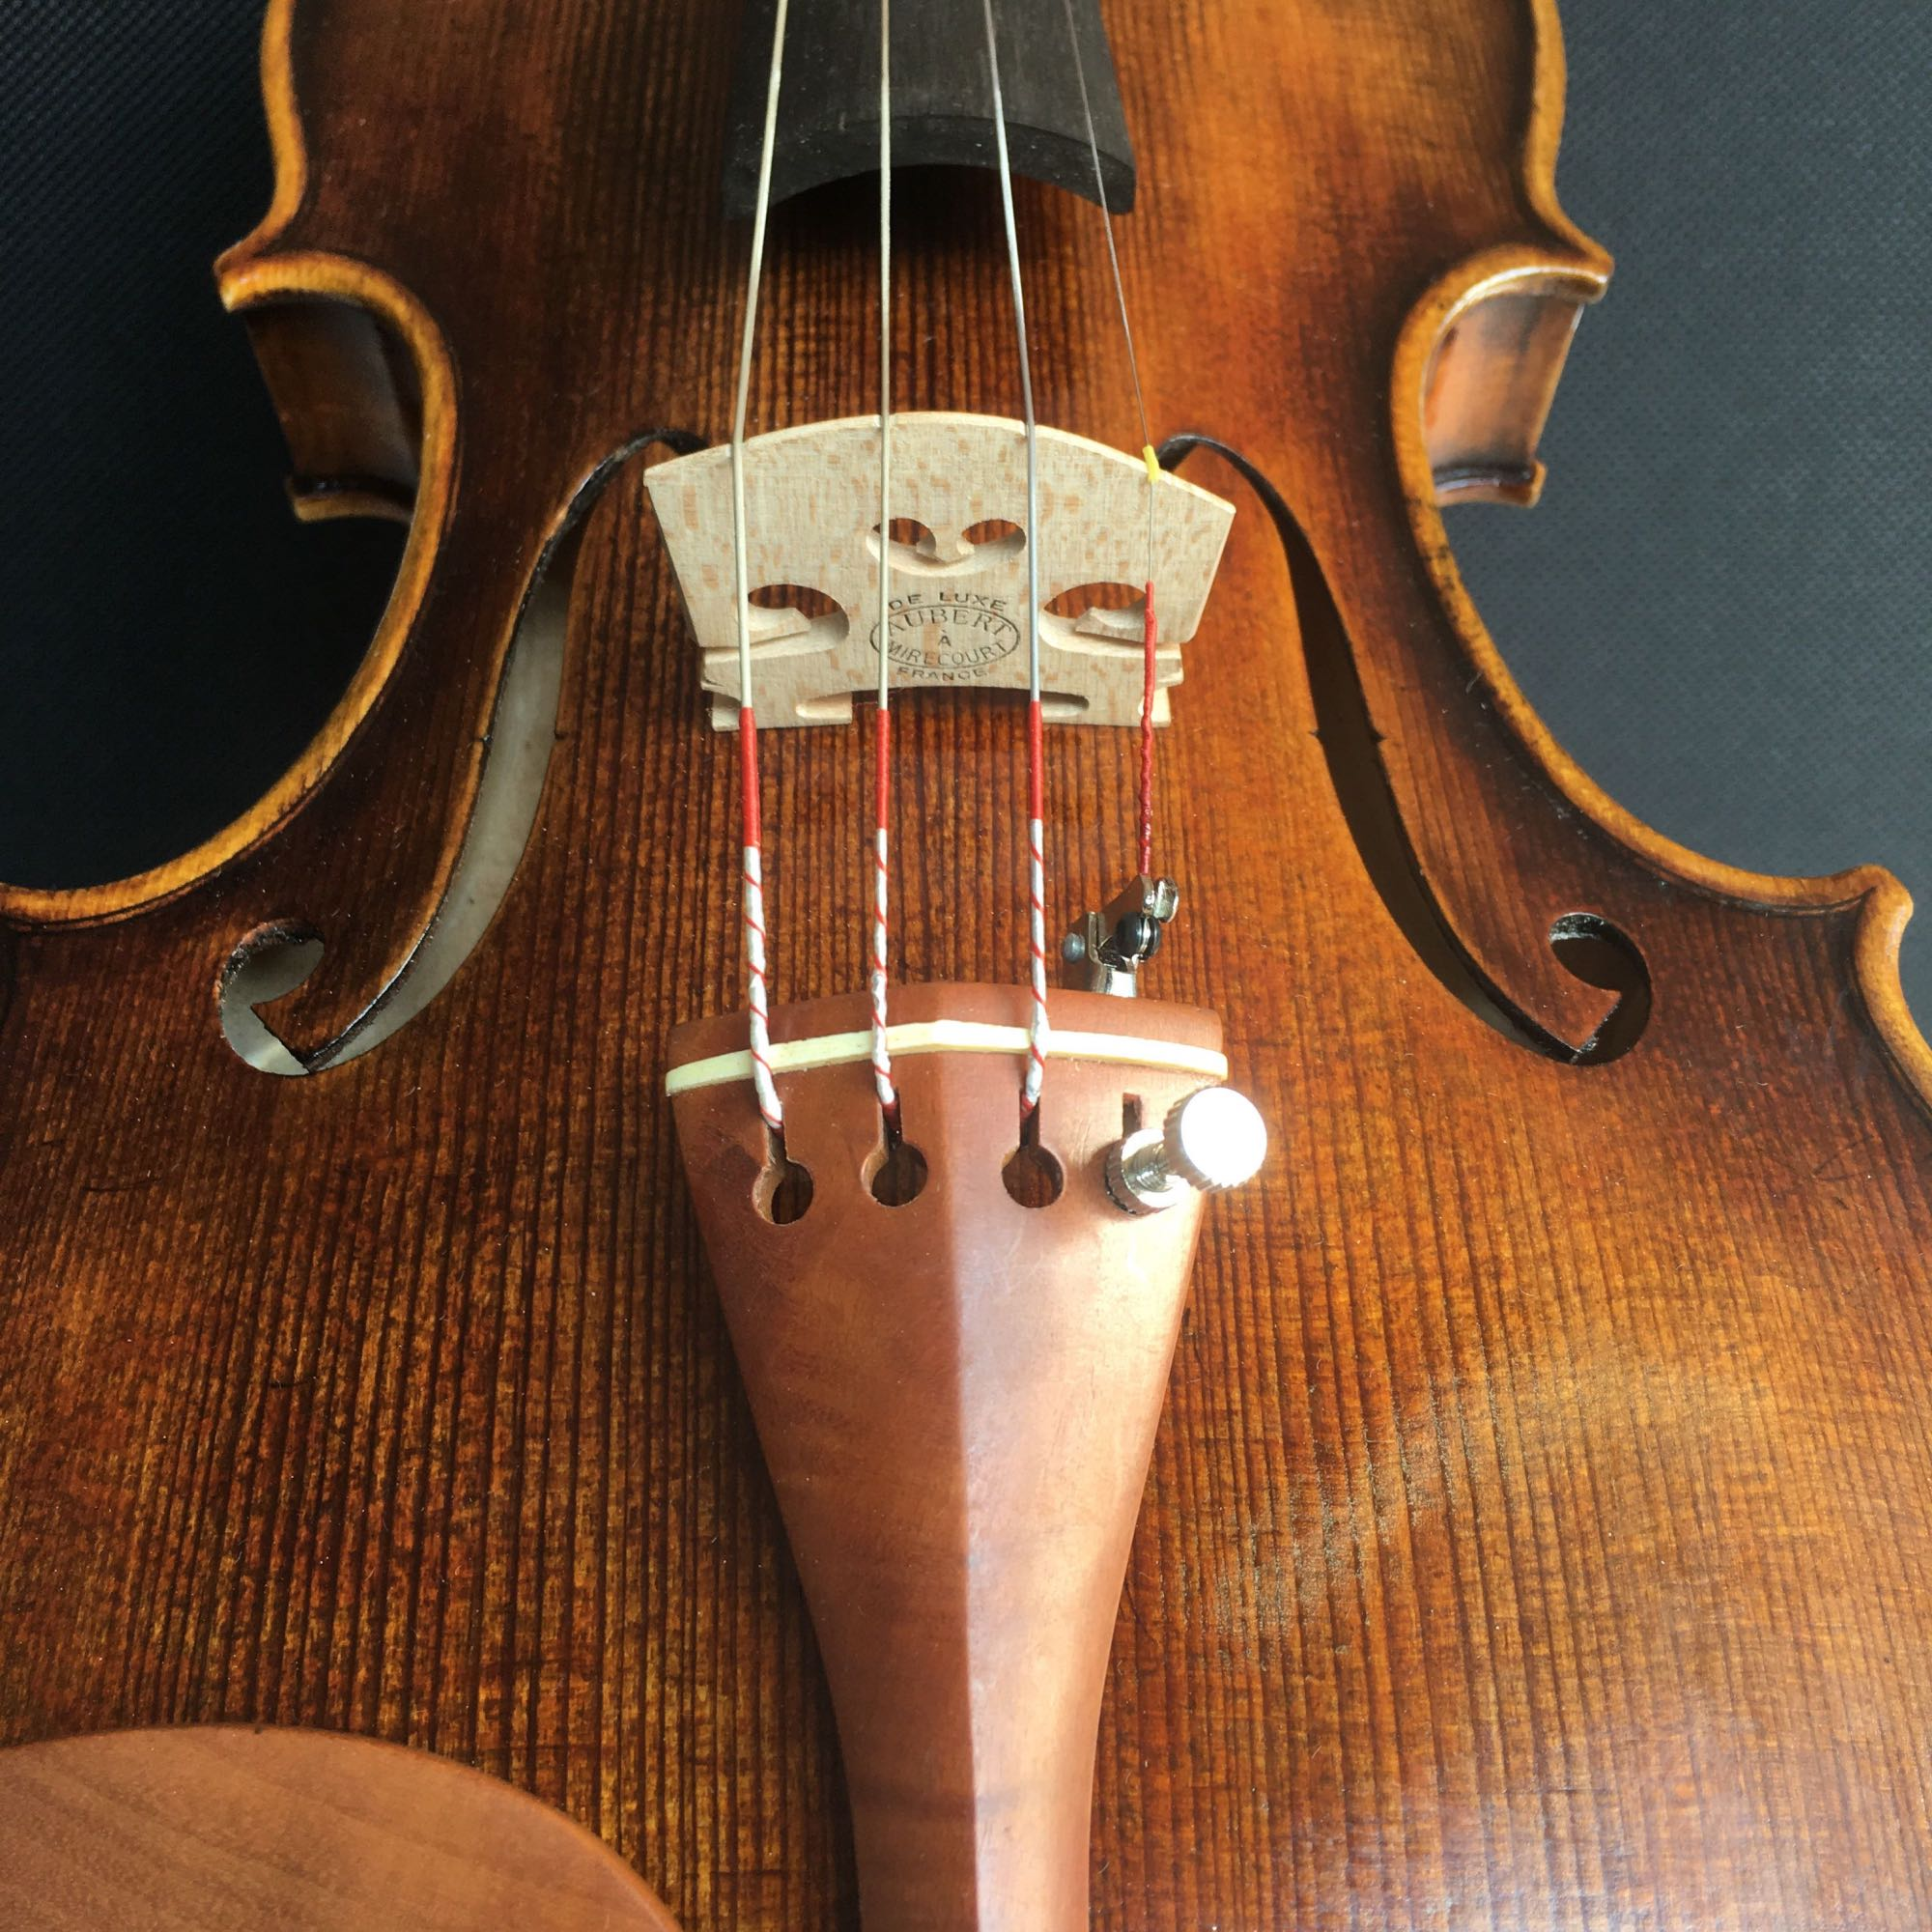 Special Offer! The Playing Grade Imitates The Antonio Stradivarius 4/4 Violin